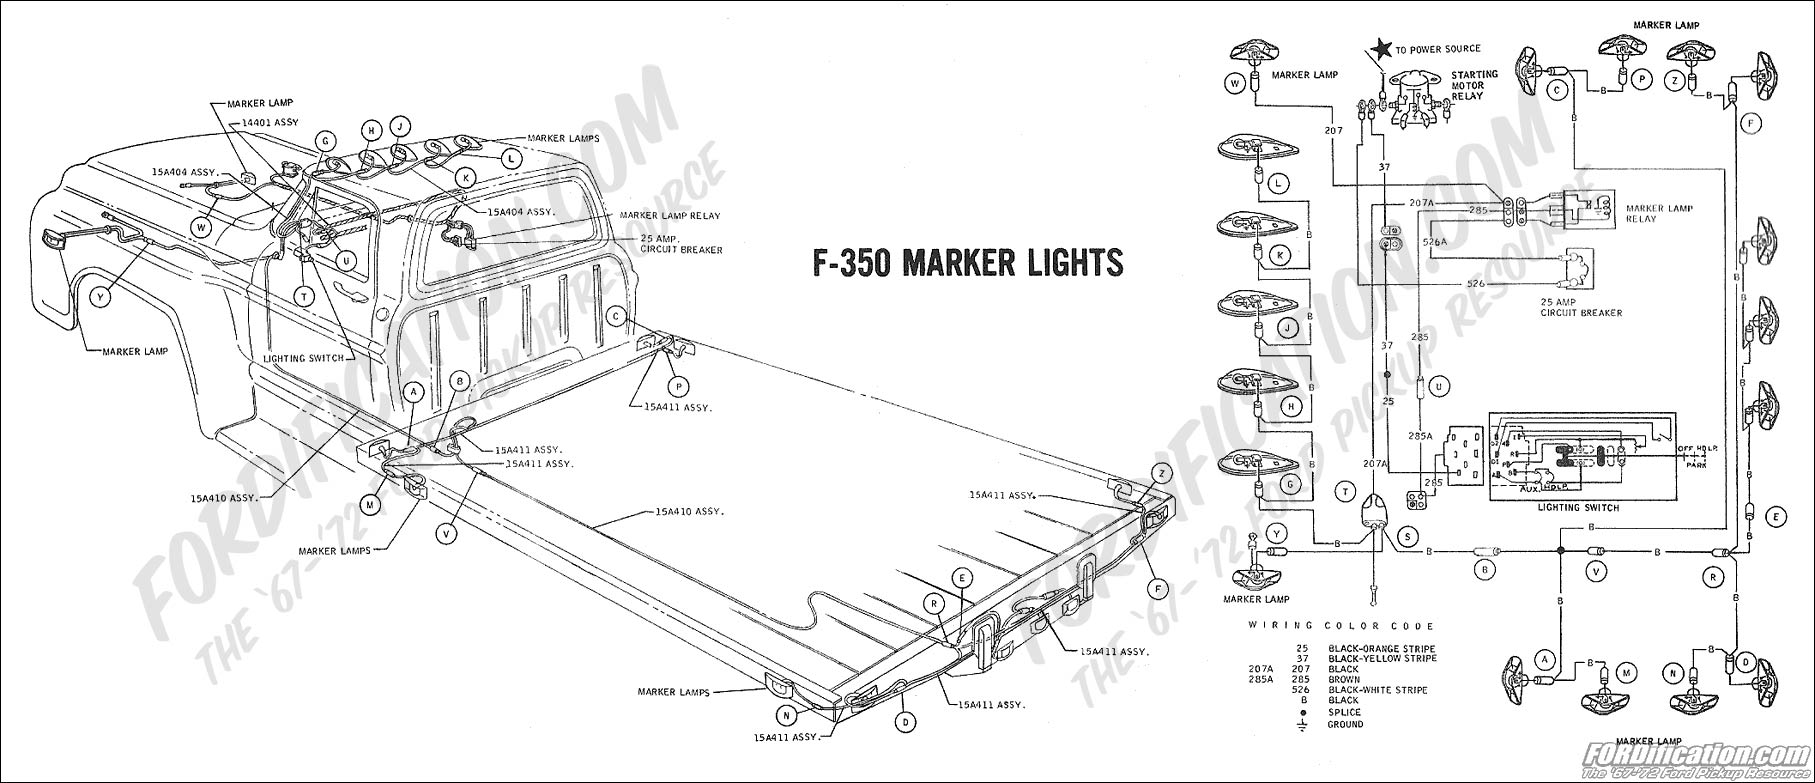 wiring_69F350markers ford truck technical drawings and schematics section h wiring Ford Super Duty Wiring Diagram at panicattacktreatment.co